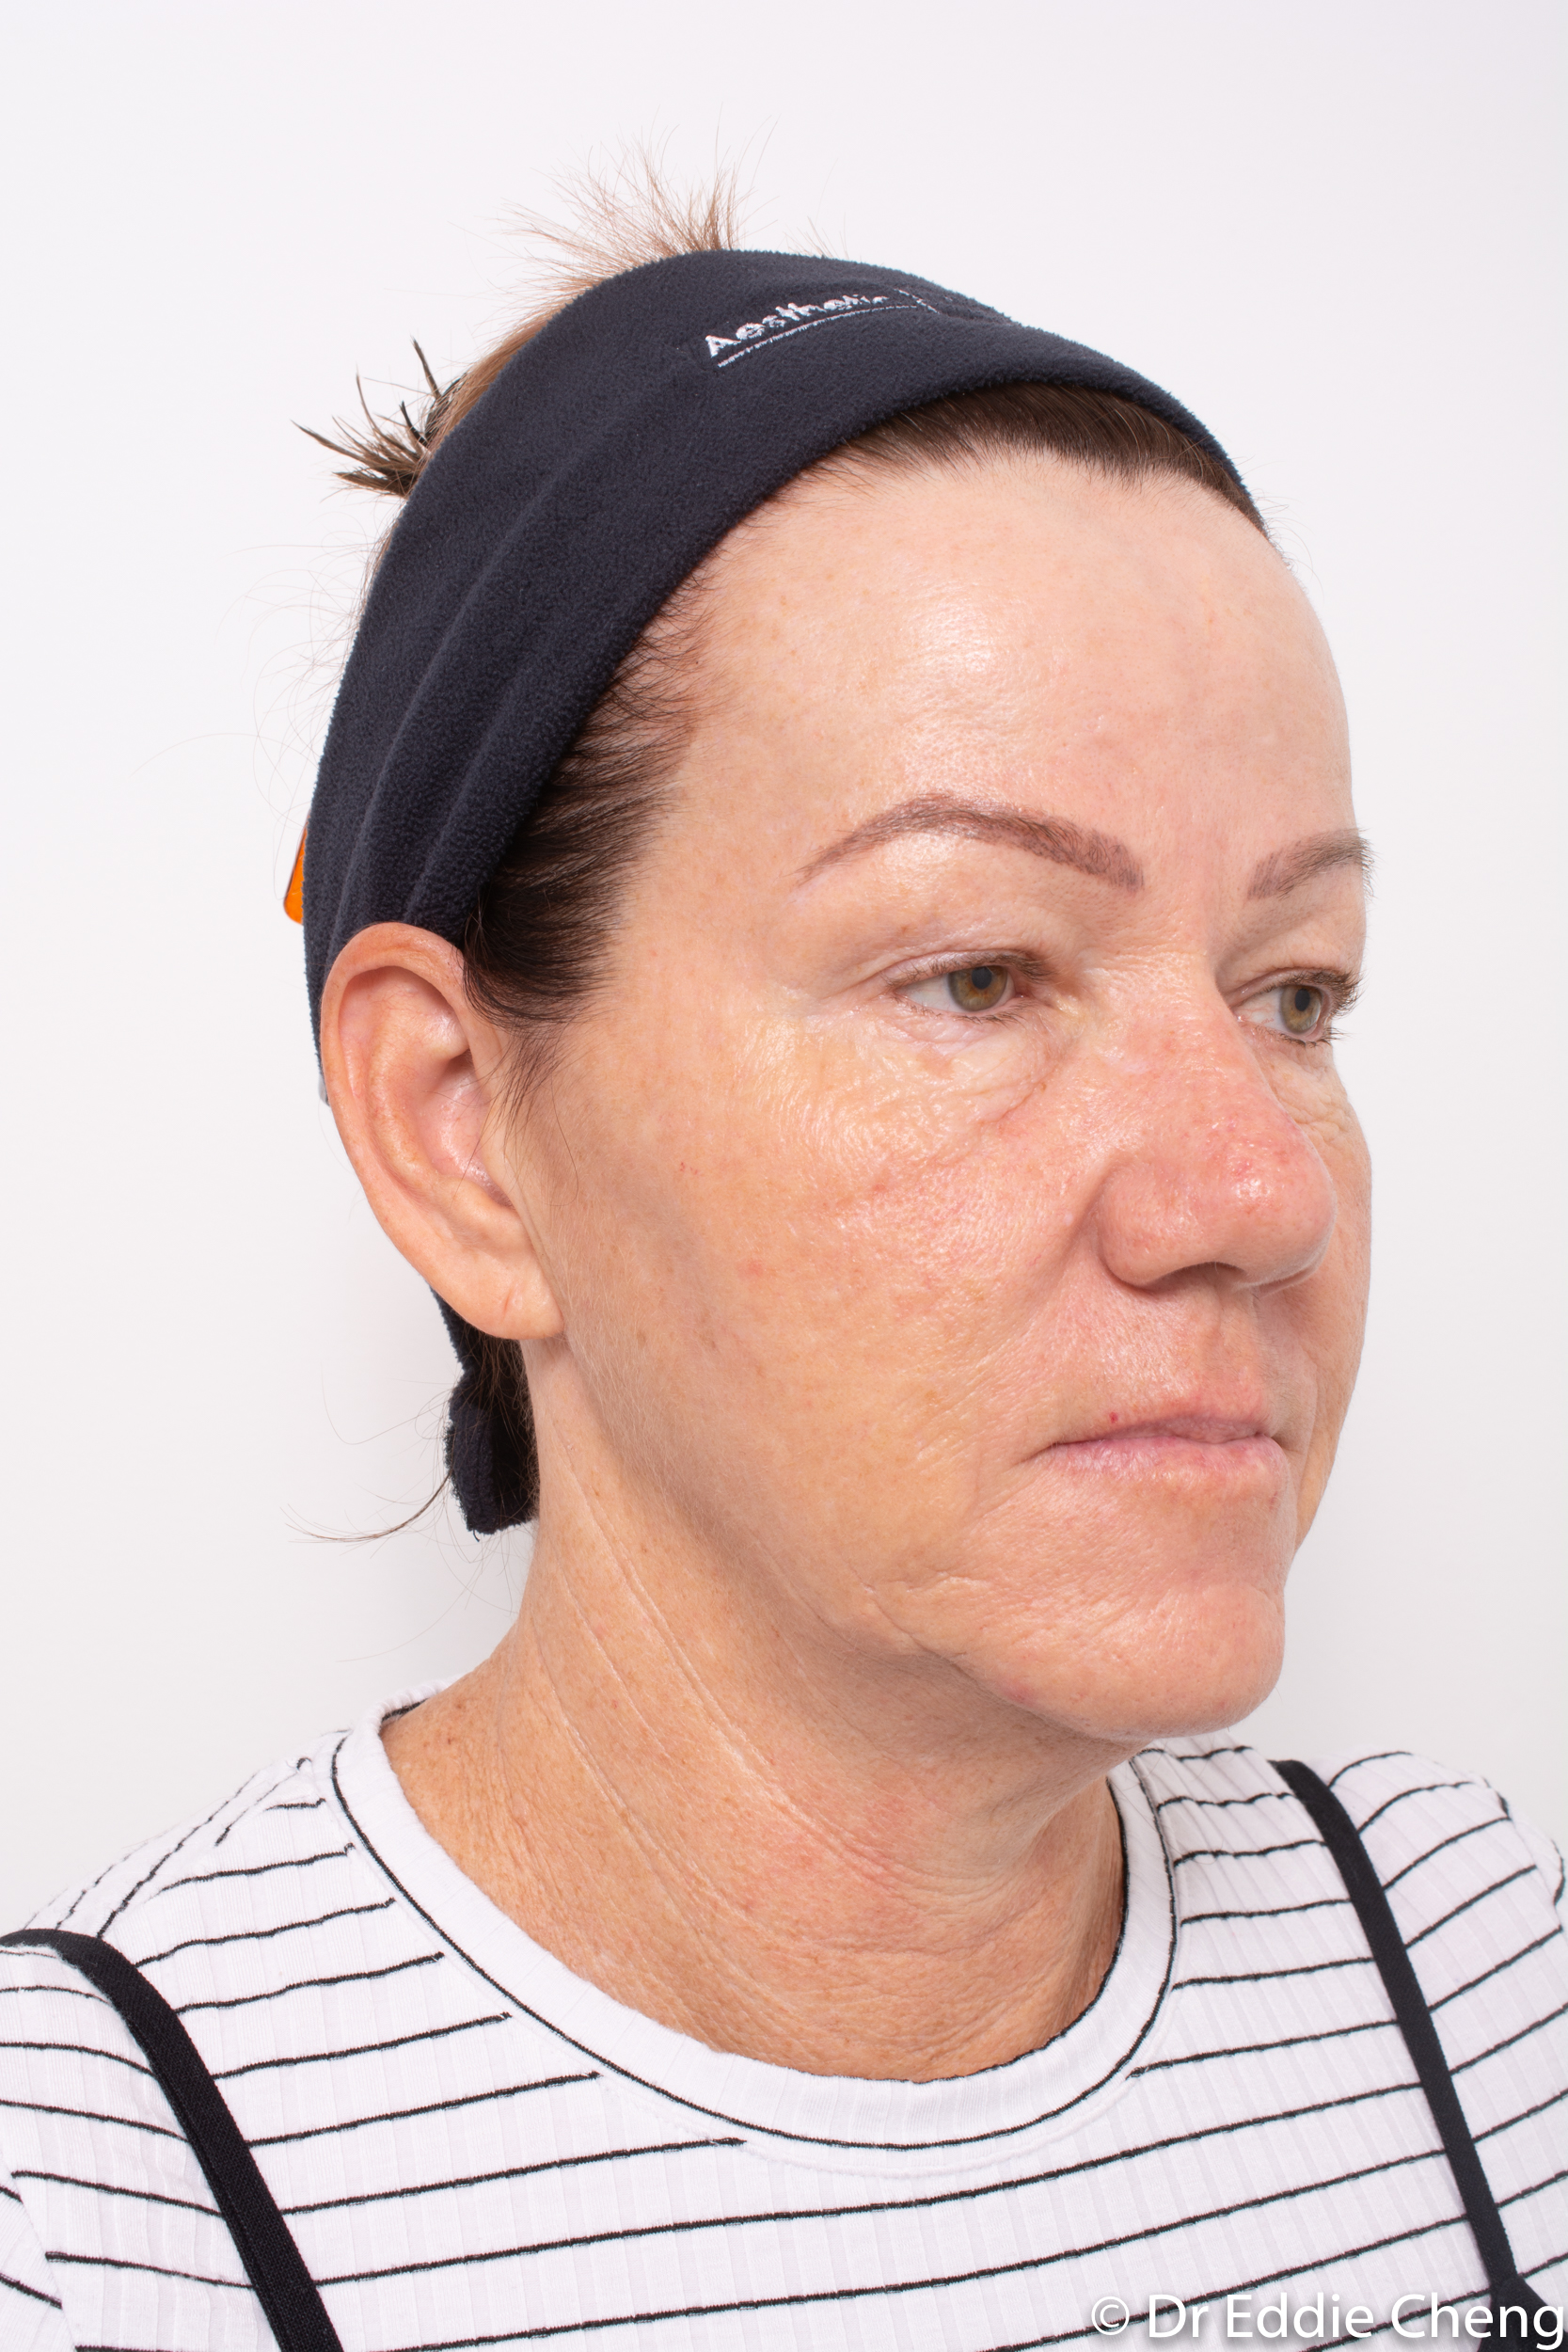 Brow lift dr eddie cheng blepharoplasty pre and post operative brisbane surgeon -2-2